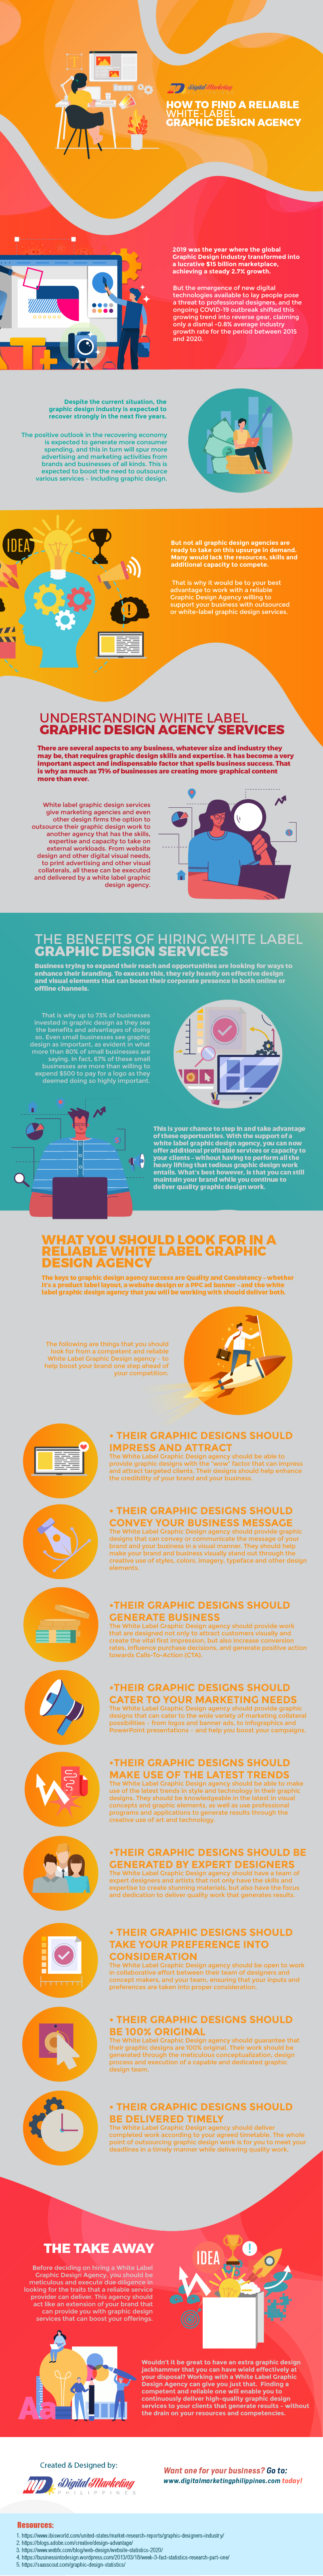 White-Label Graphic Design Agency Infographic